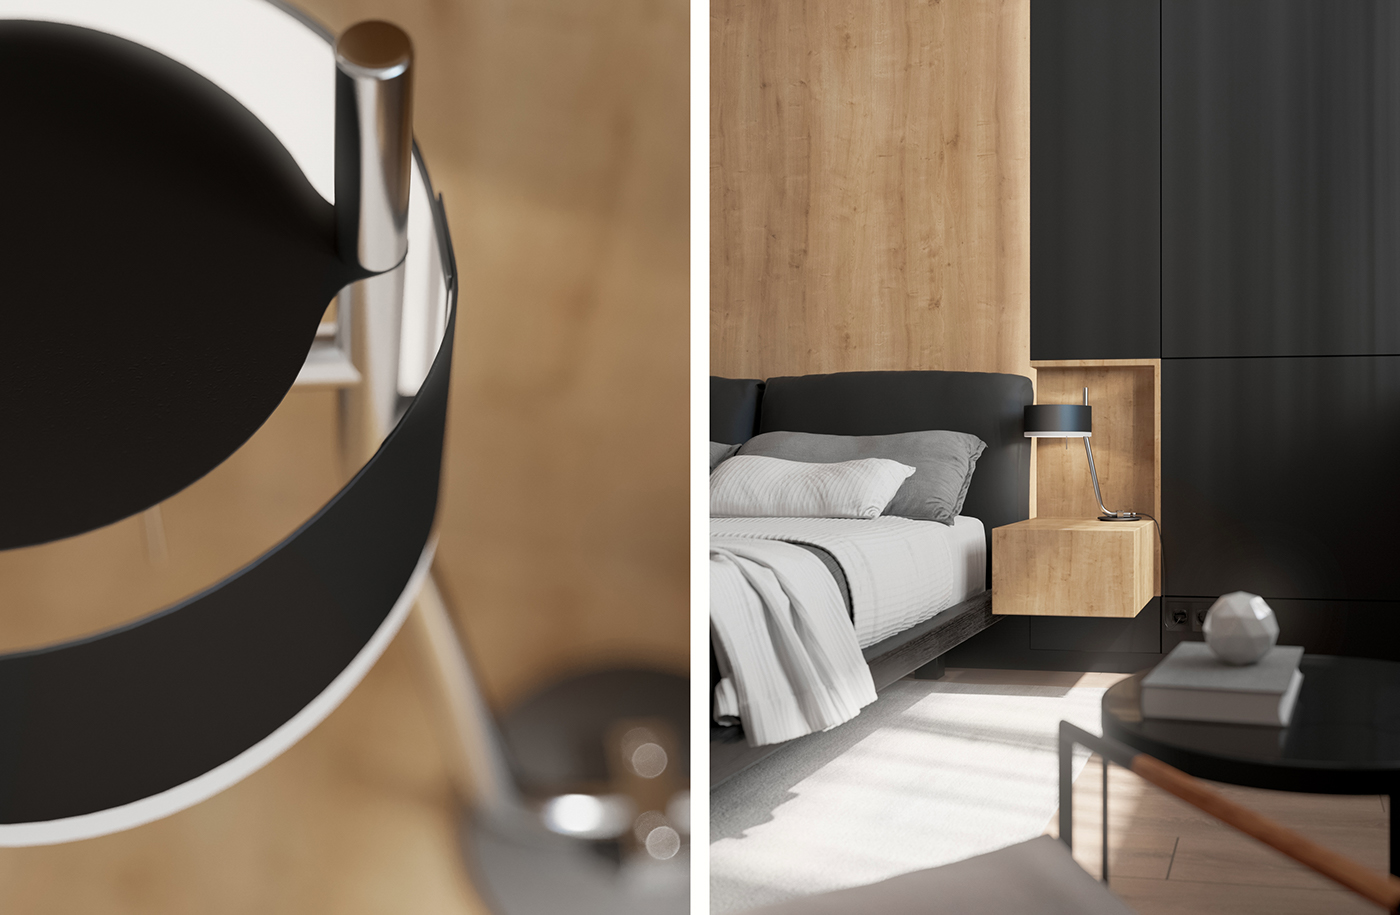 Black and Wood Apartment Shines with Mid-Century Modern Lighting 6 mid-century modern lighting Black and Wood Apartment Shines with Mid-Century Modern Lighting Black and Wood Apartment Shines with Mid Century Modern Lighting 6